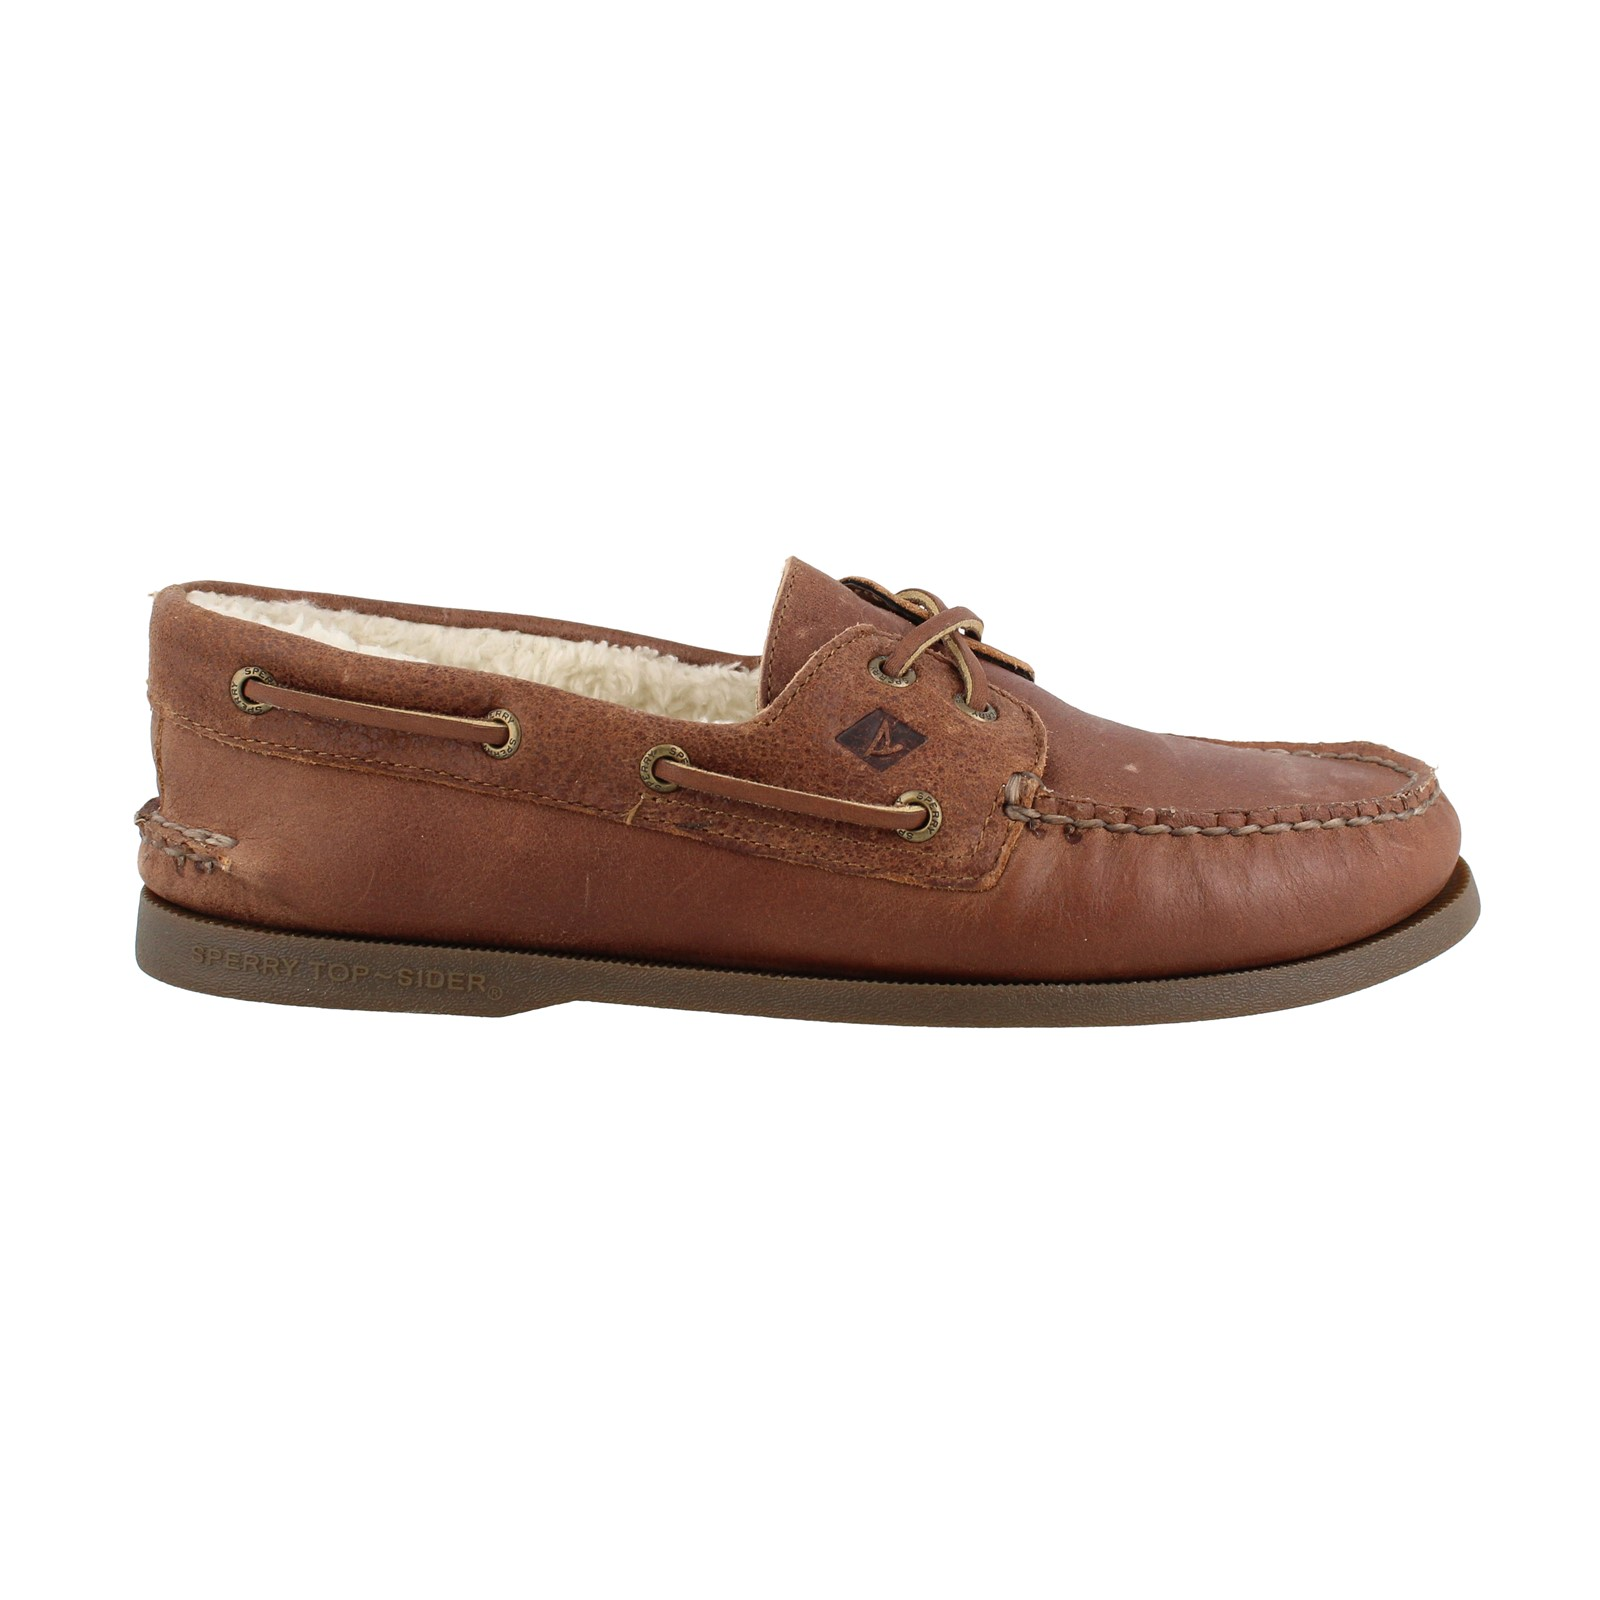 4d1a825ea4 Men s Sperry